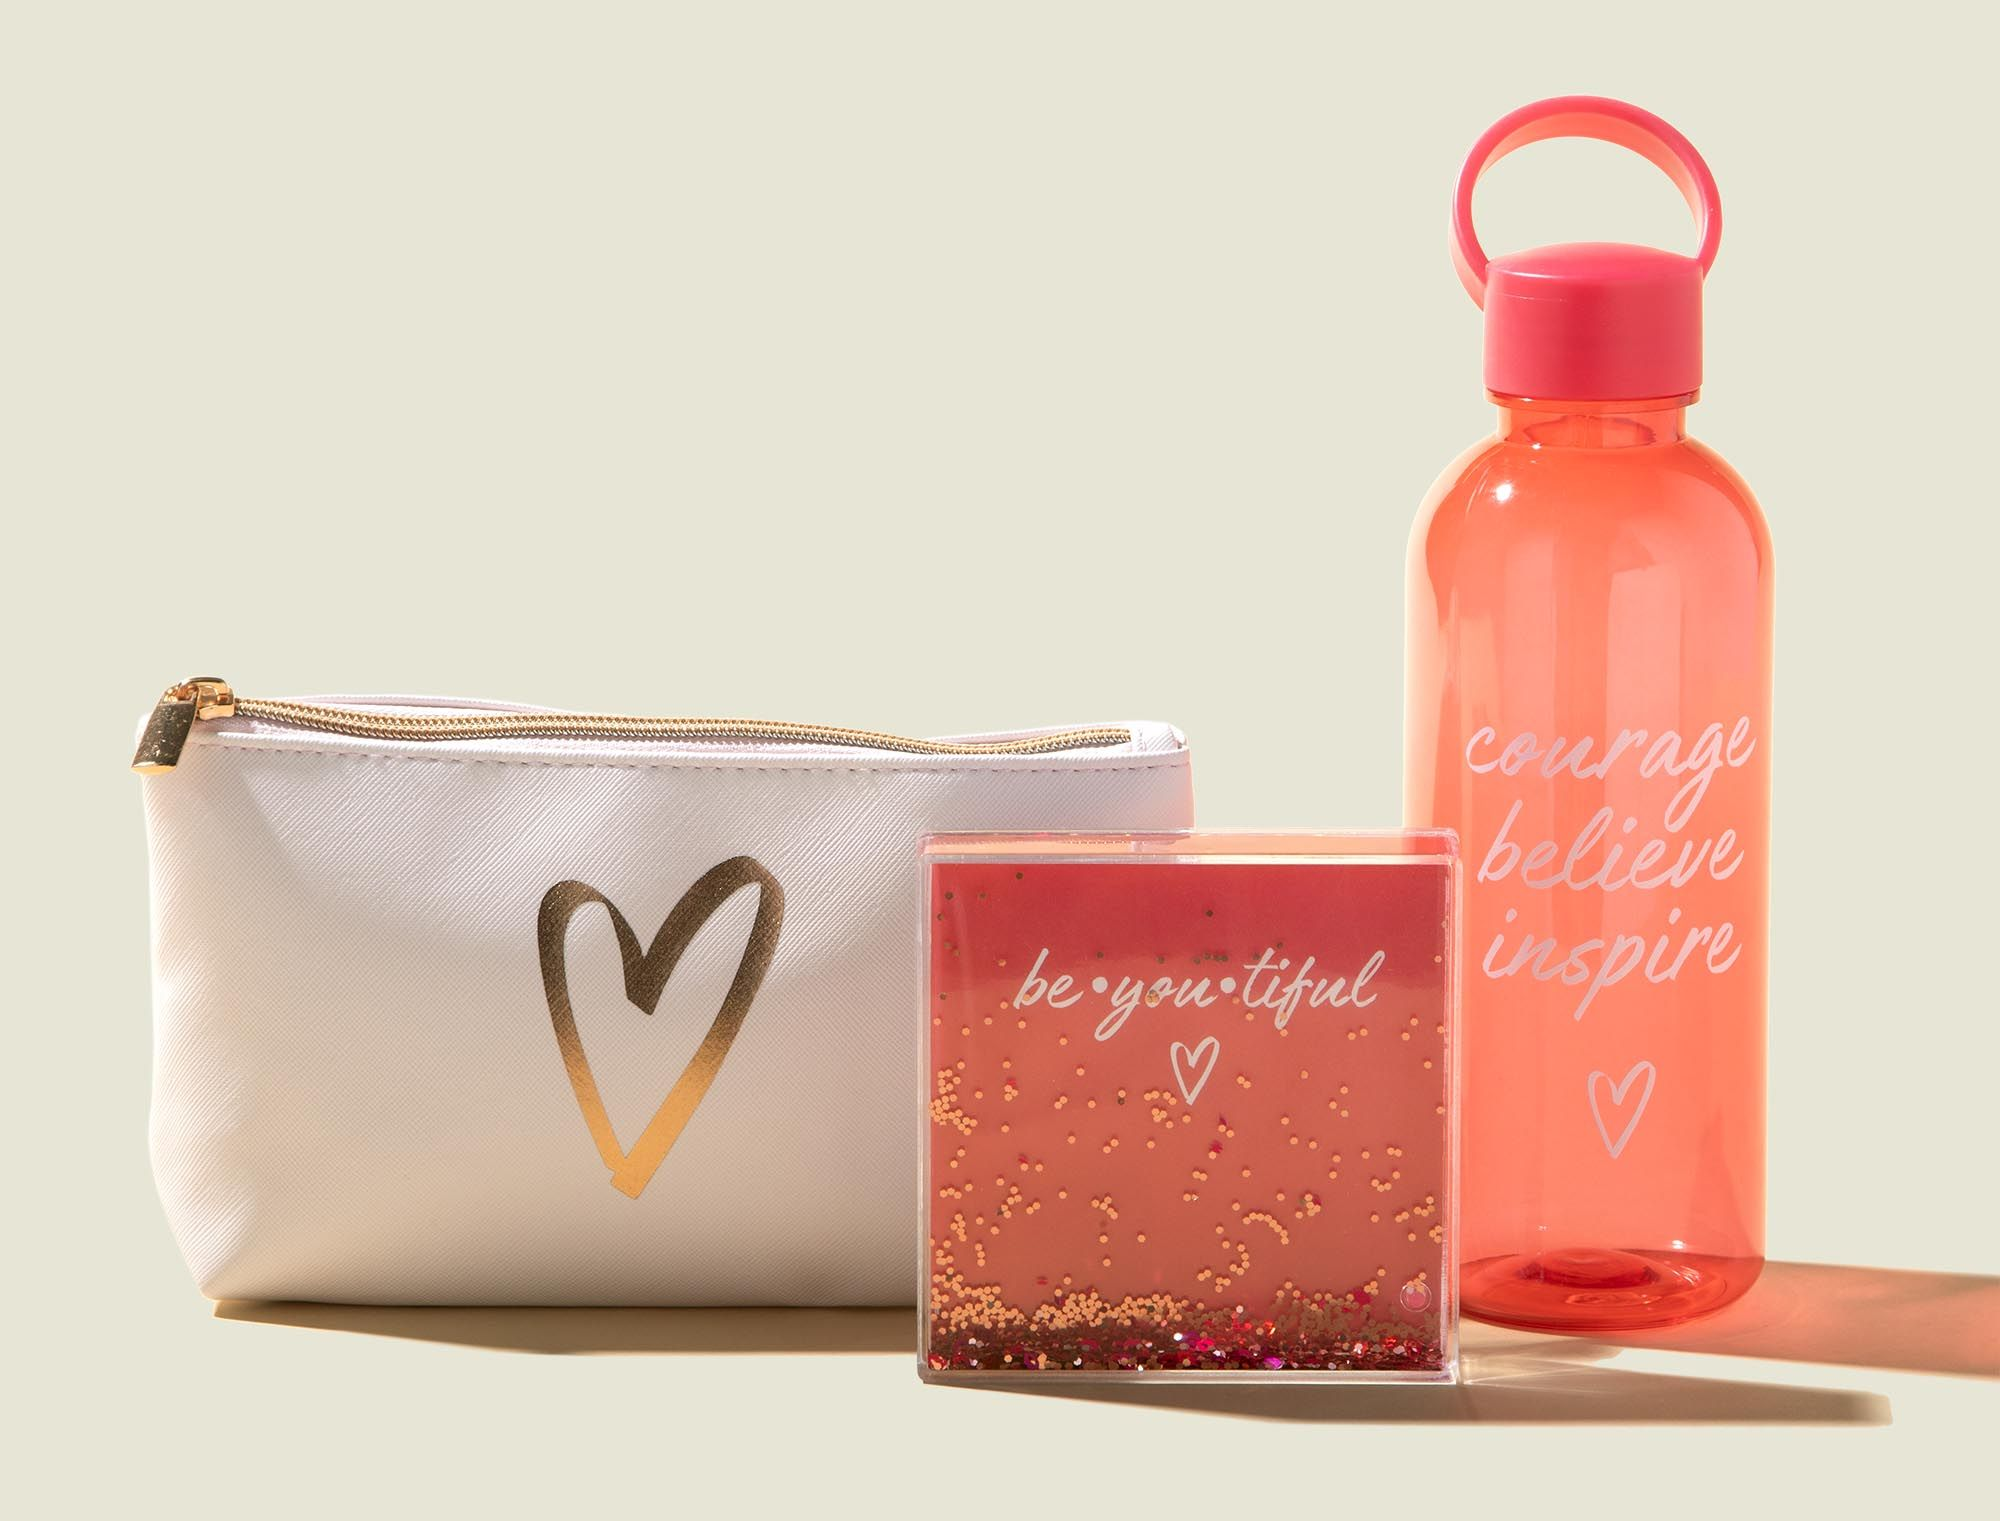 Standing zip pouch with water bottle and liquid glitter picture frame